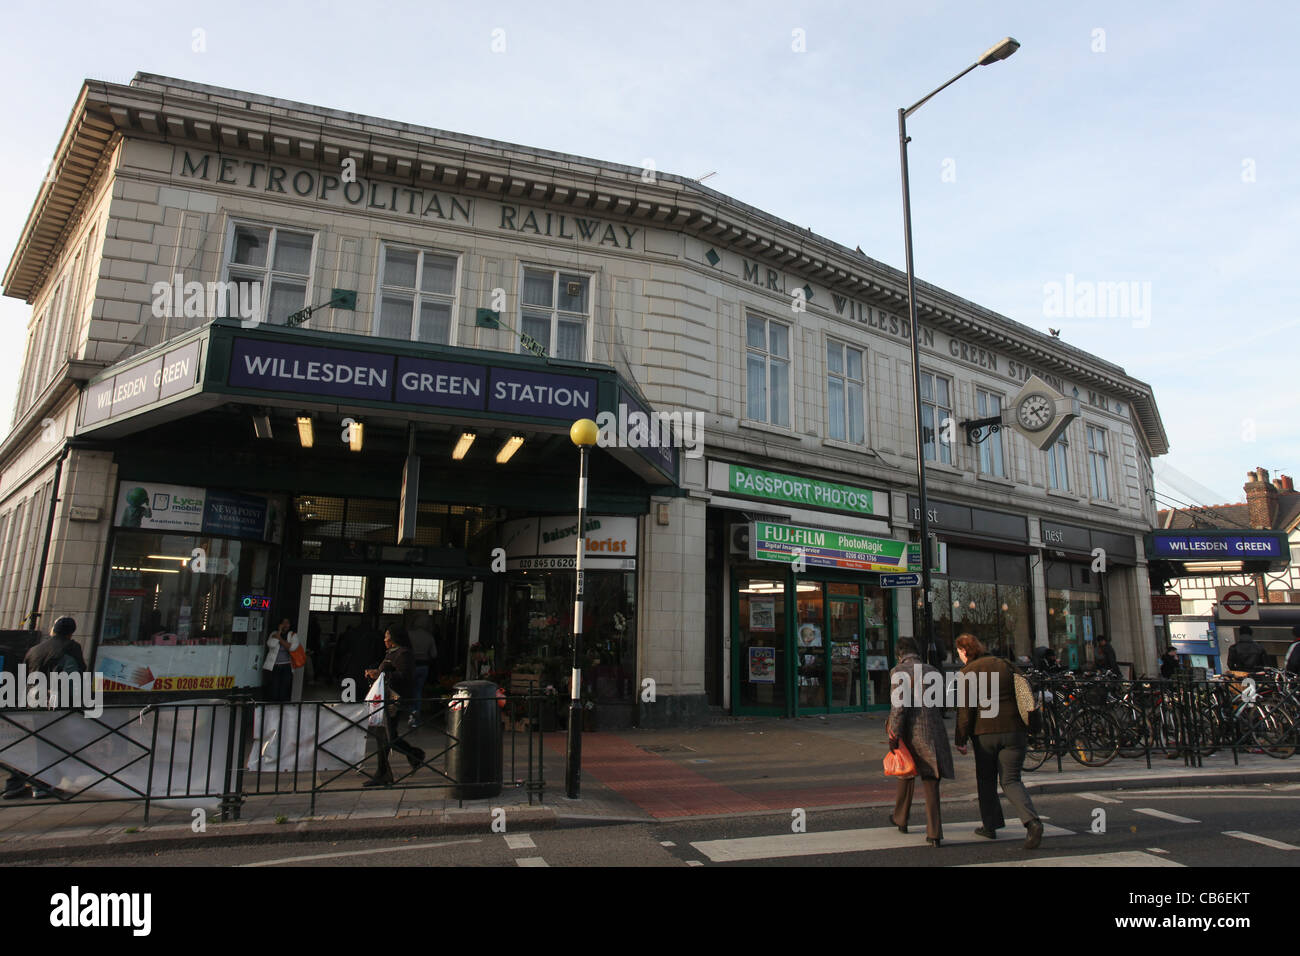 Willesden Green Underground Station and shops - Stock Image